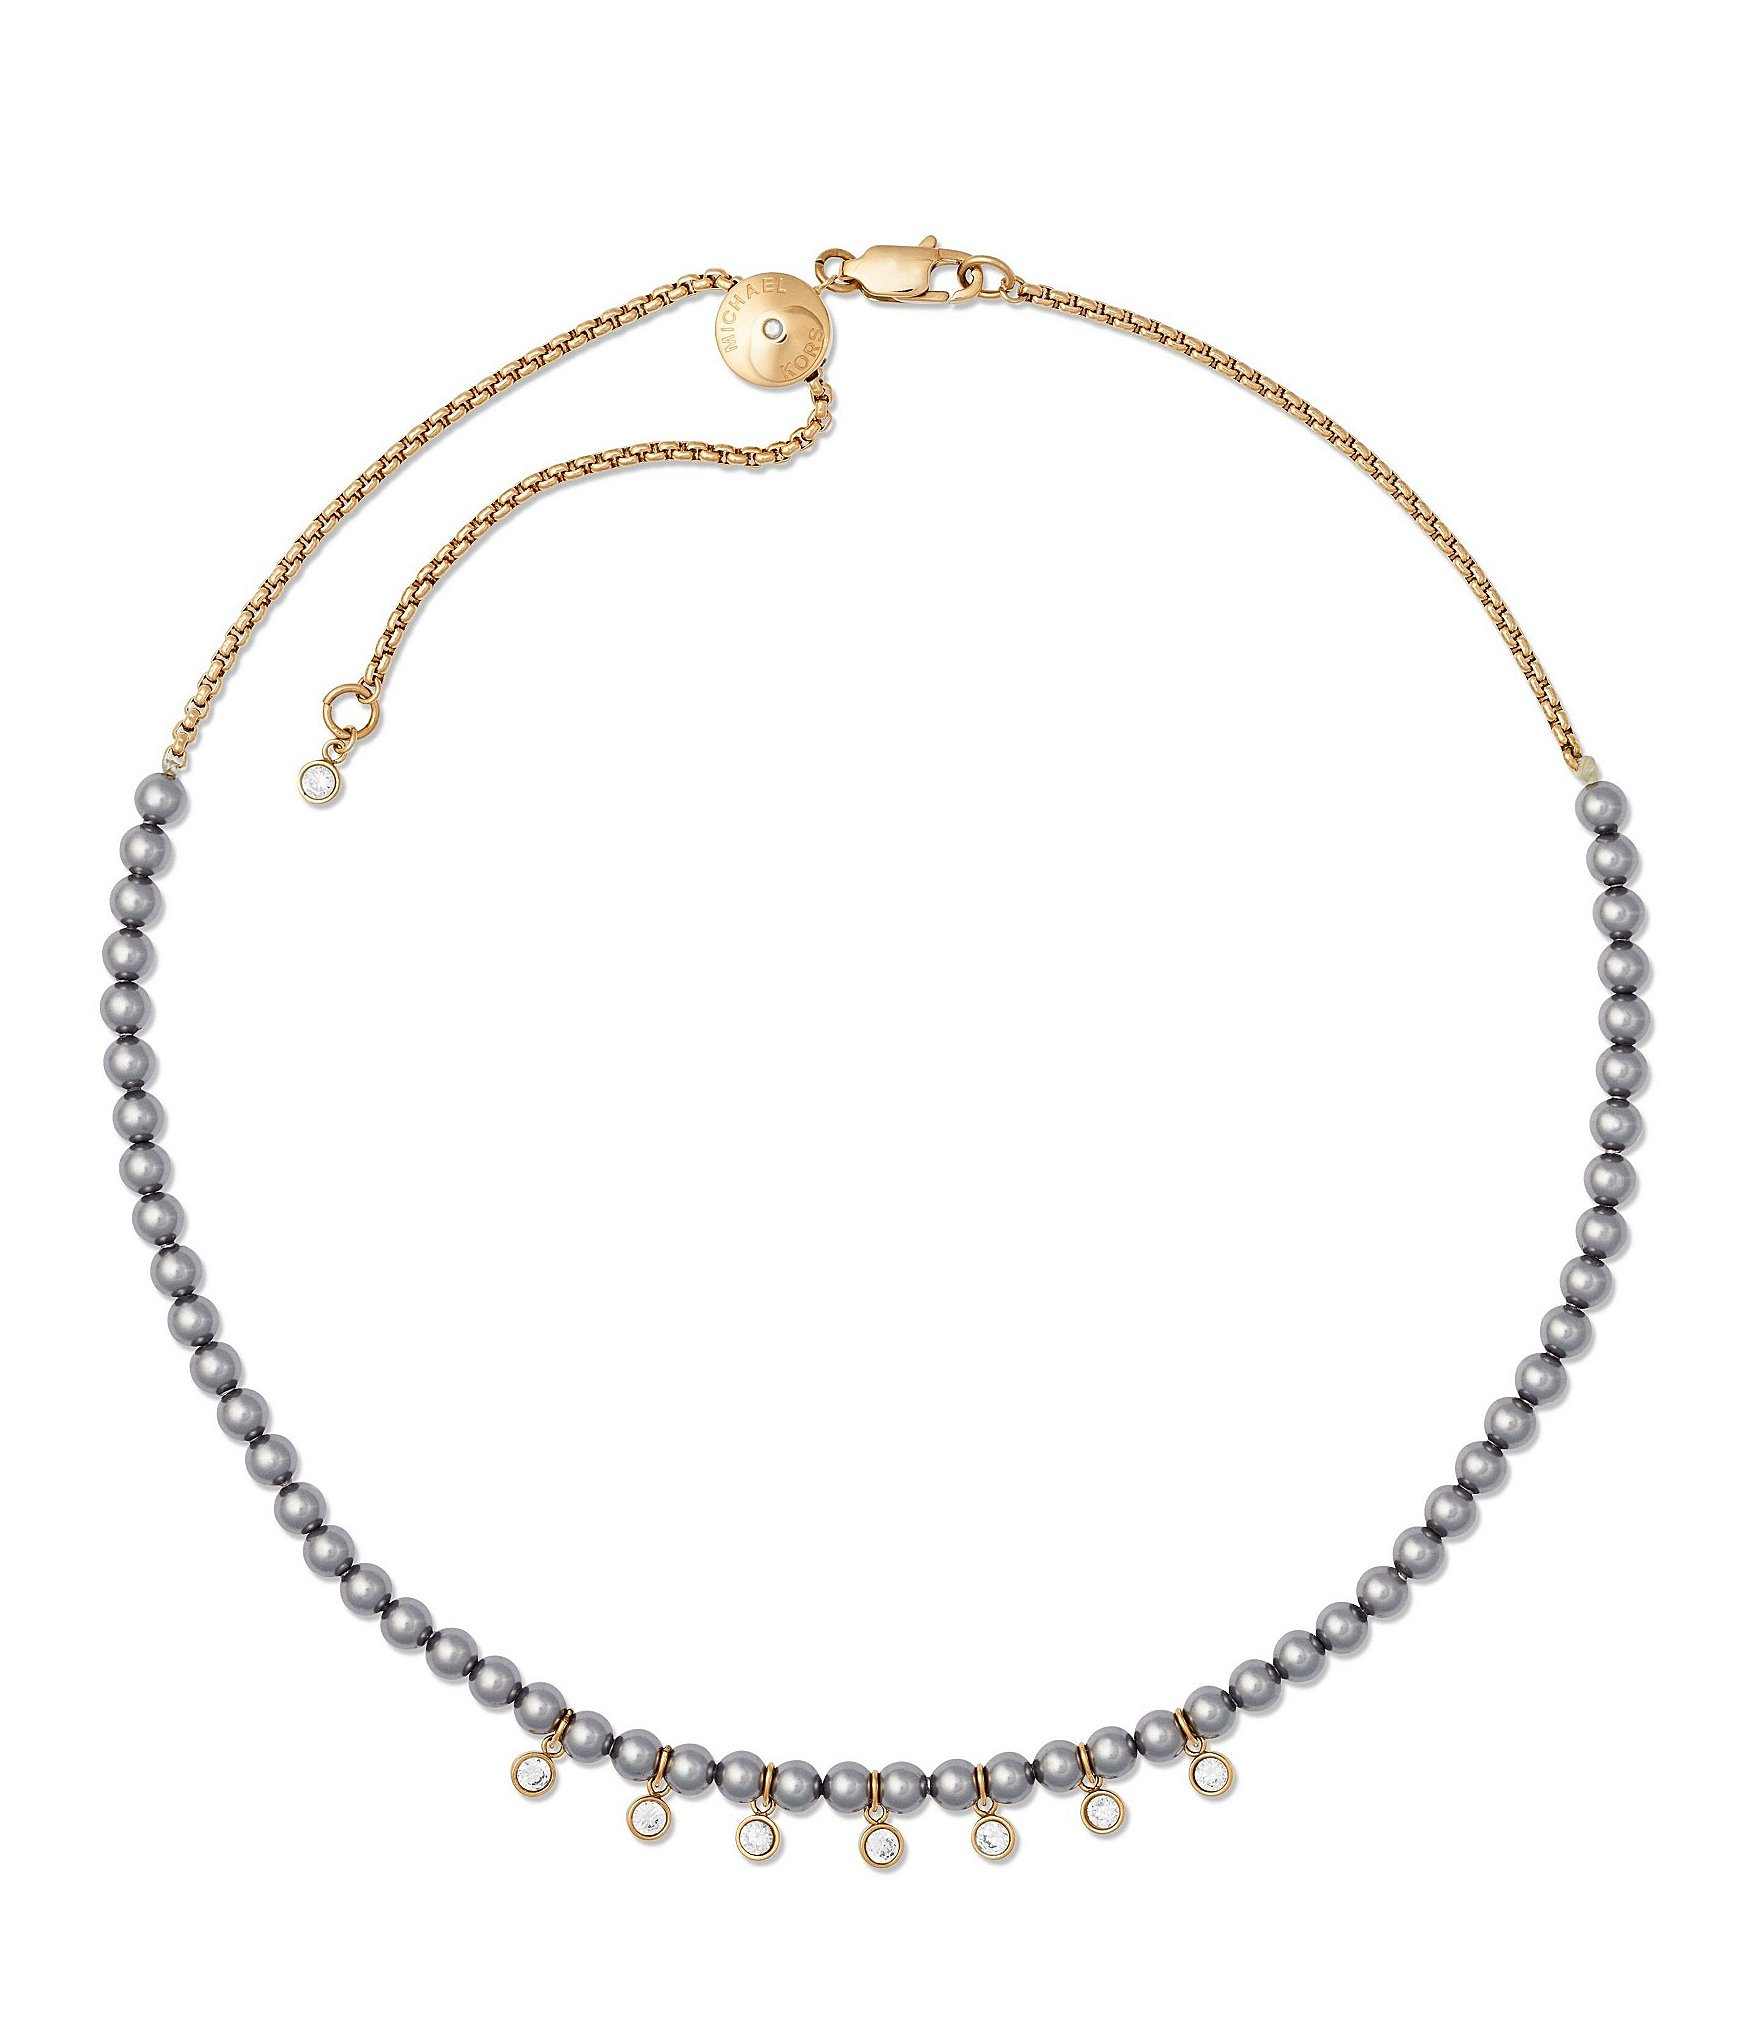 50060165 together with The Amelia Sterling Silver Diamonflash Cubic Zirconia Necklace SPEN447 as well Alfalux Vertigo Clay 60x60 Lappato also 507174990 as well Lg Viatera Quartz Countertops. on a grey pearl